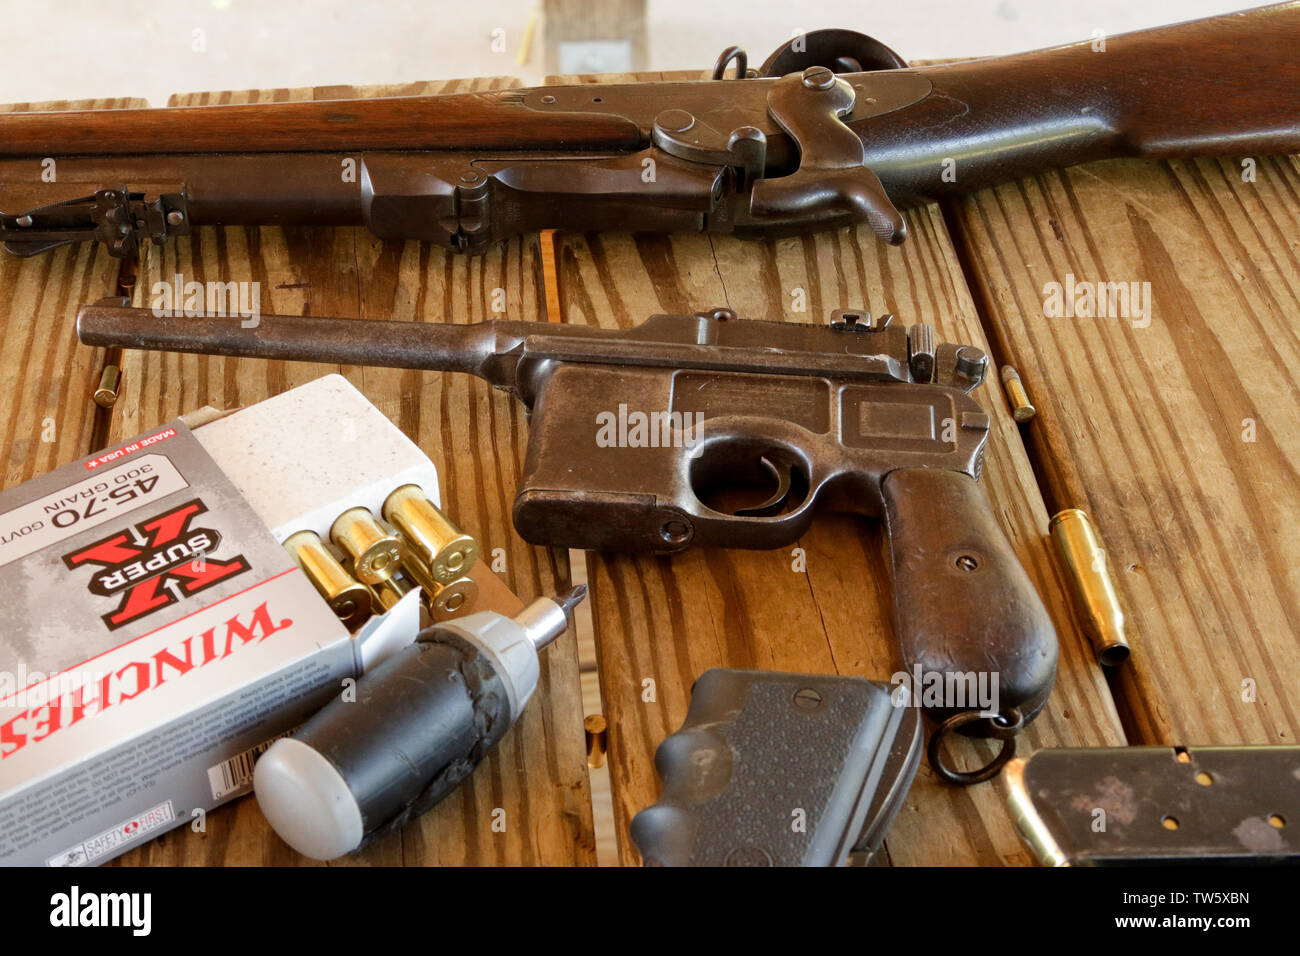 graphic regarding Printable Gun Stock Templates named Mauser Gun Inventory Pictures Mauser Gun Inventory Pics - Alamy